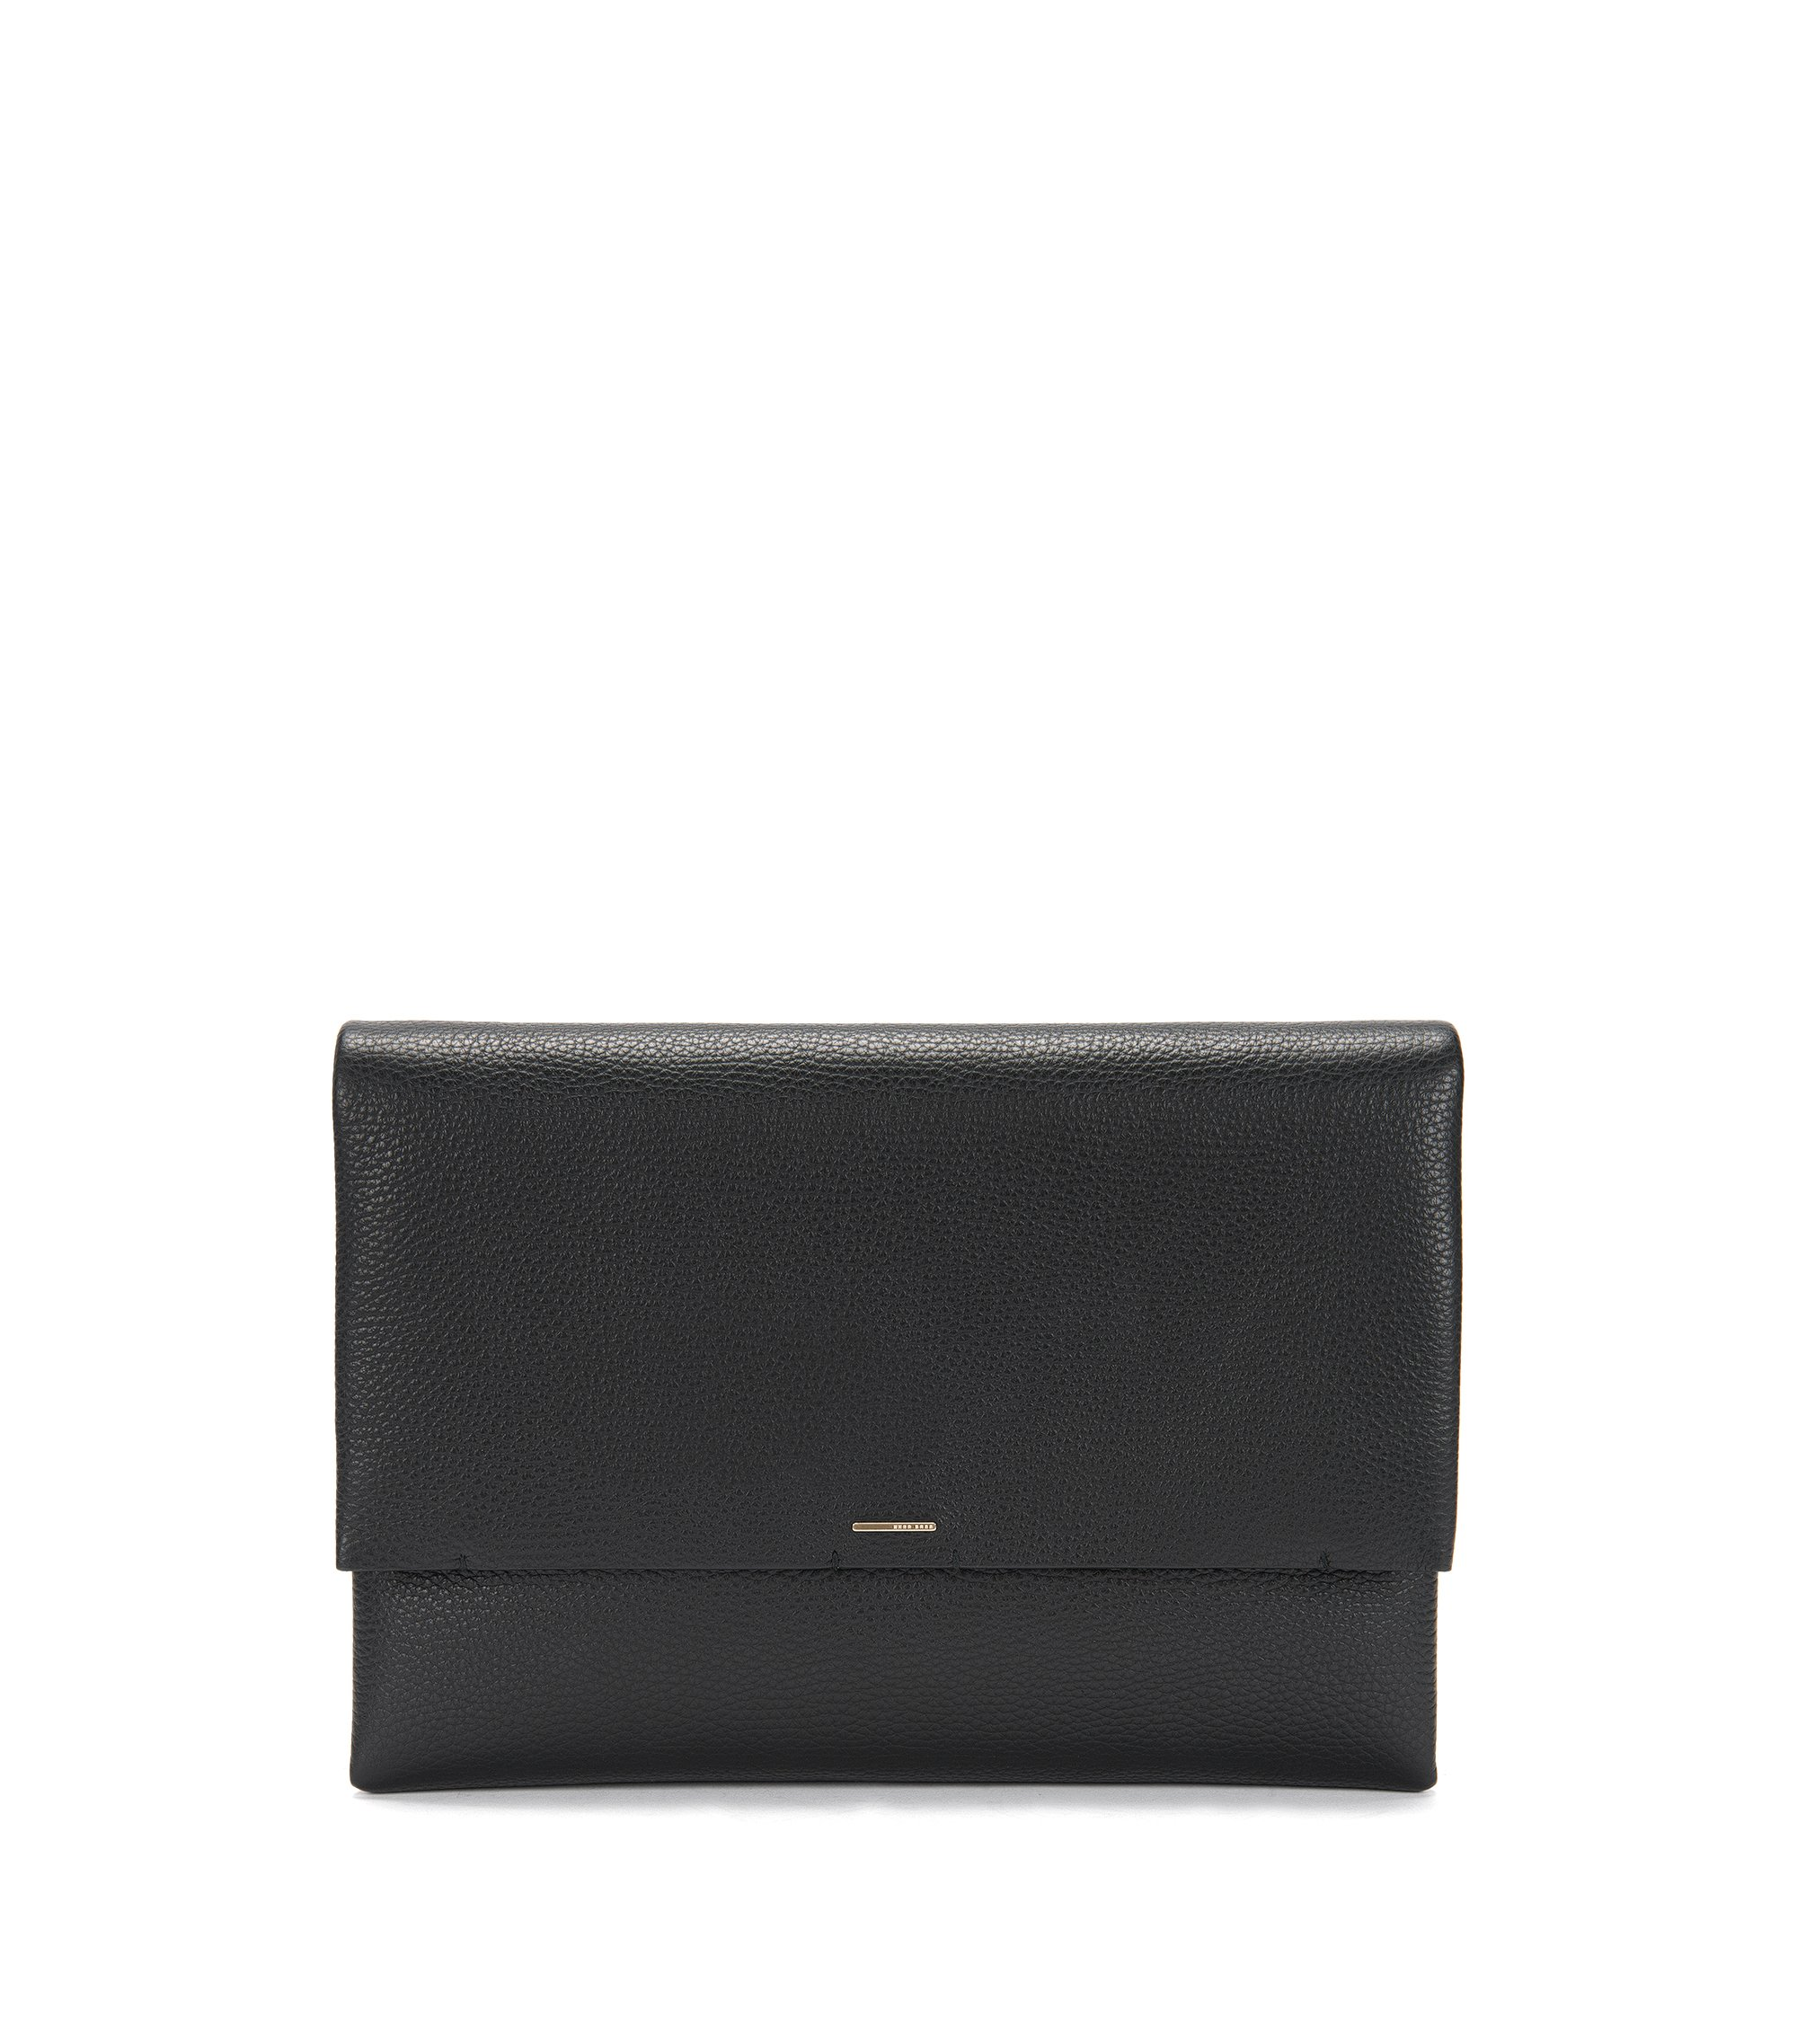 Pochette BOSS Luxury Staple in pelle italiana senza fodera interna con tracolla a catena, Nero